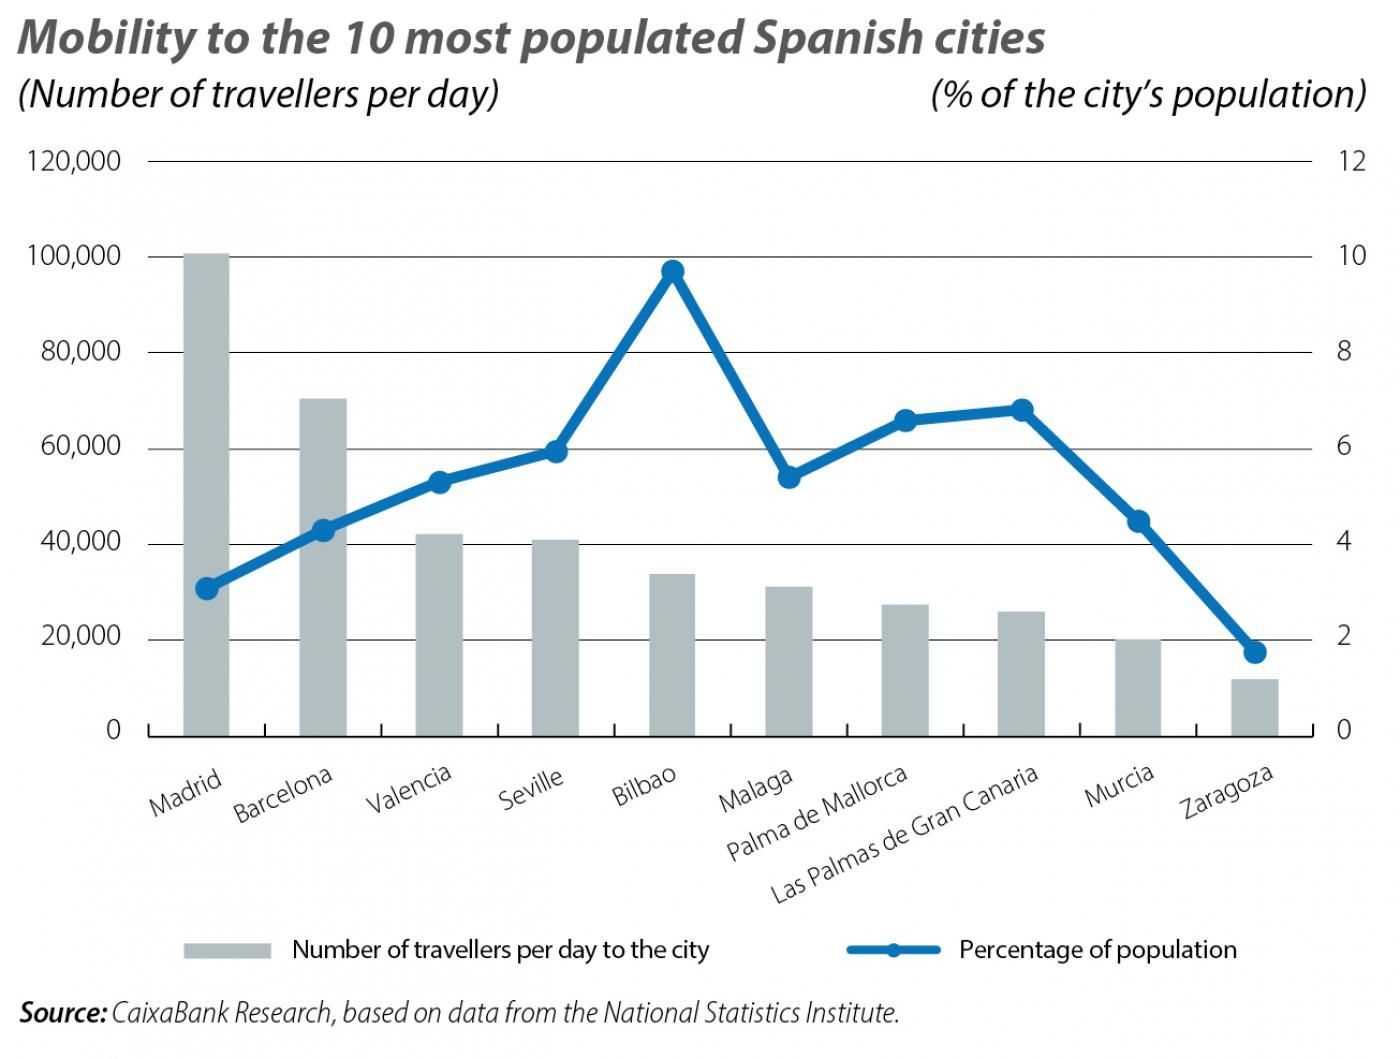 Mobility to the 10 most populated Spanish cities